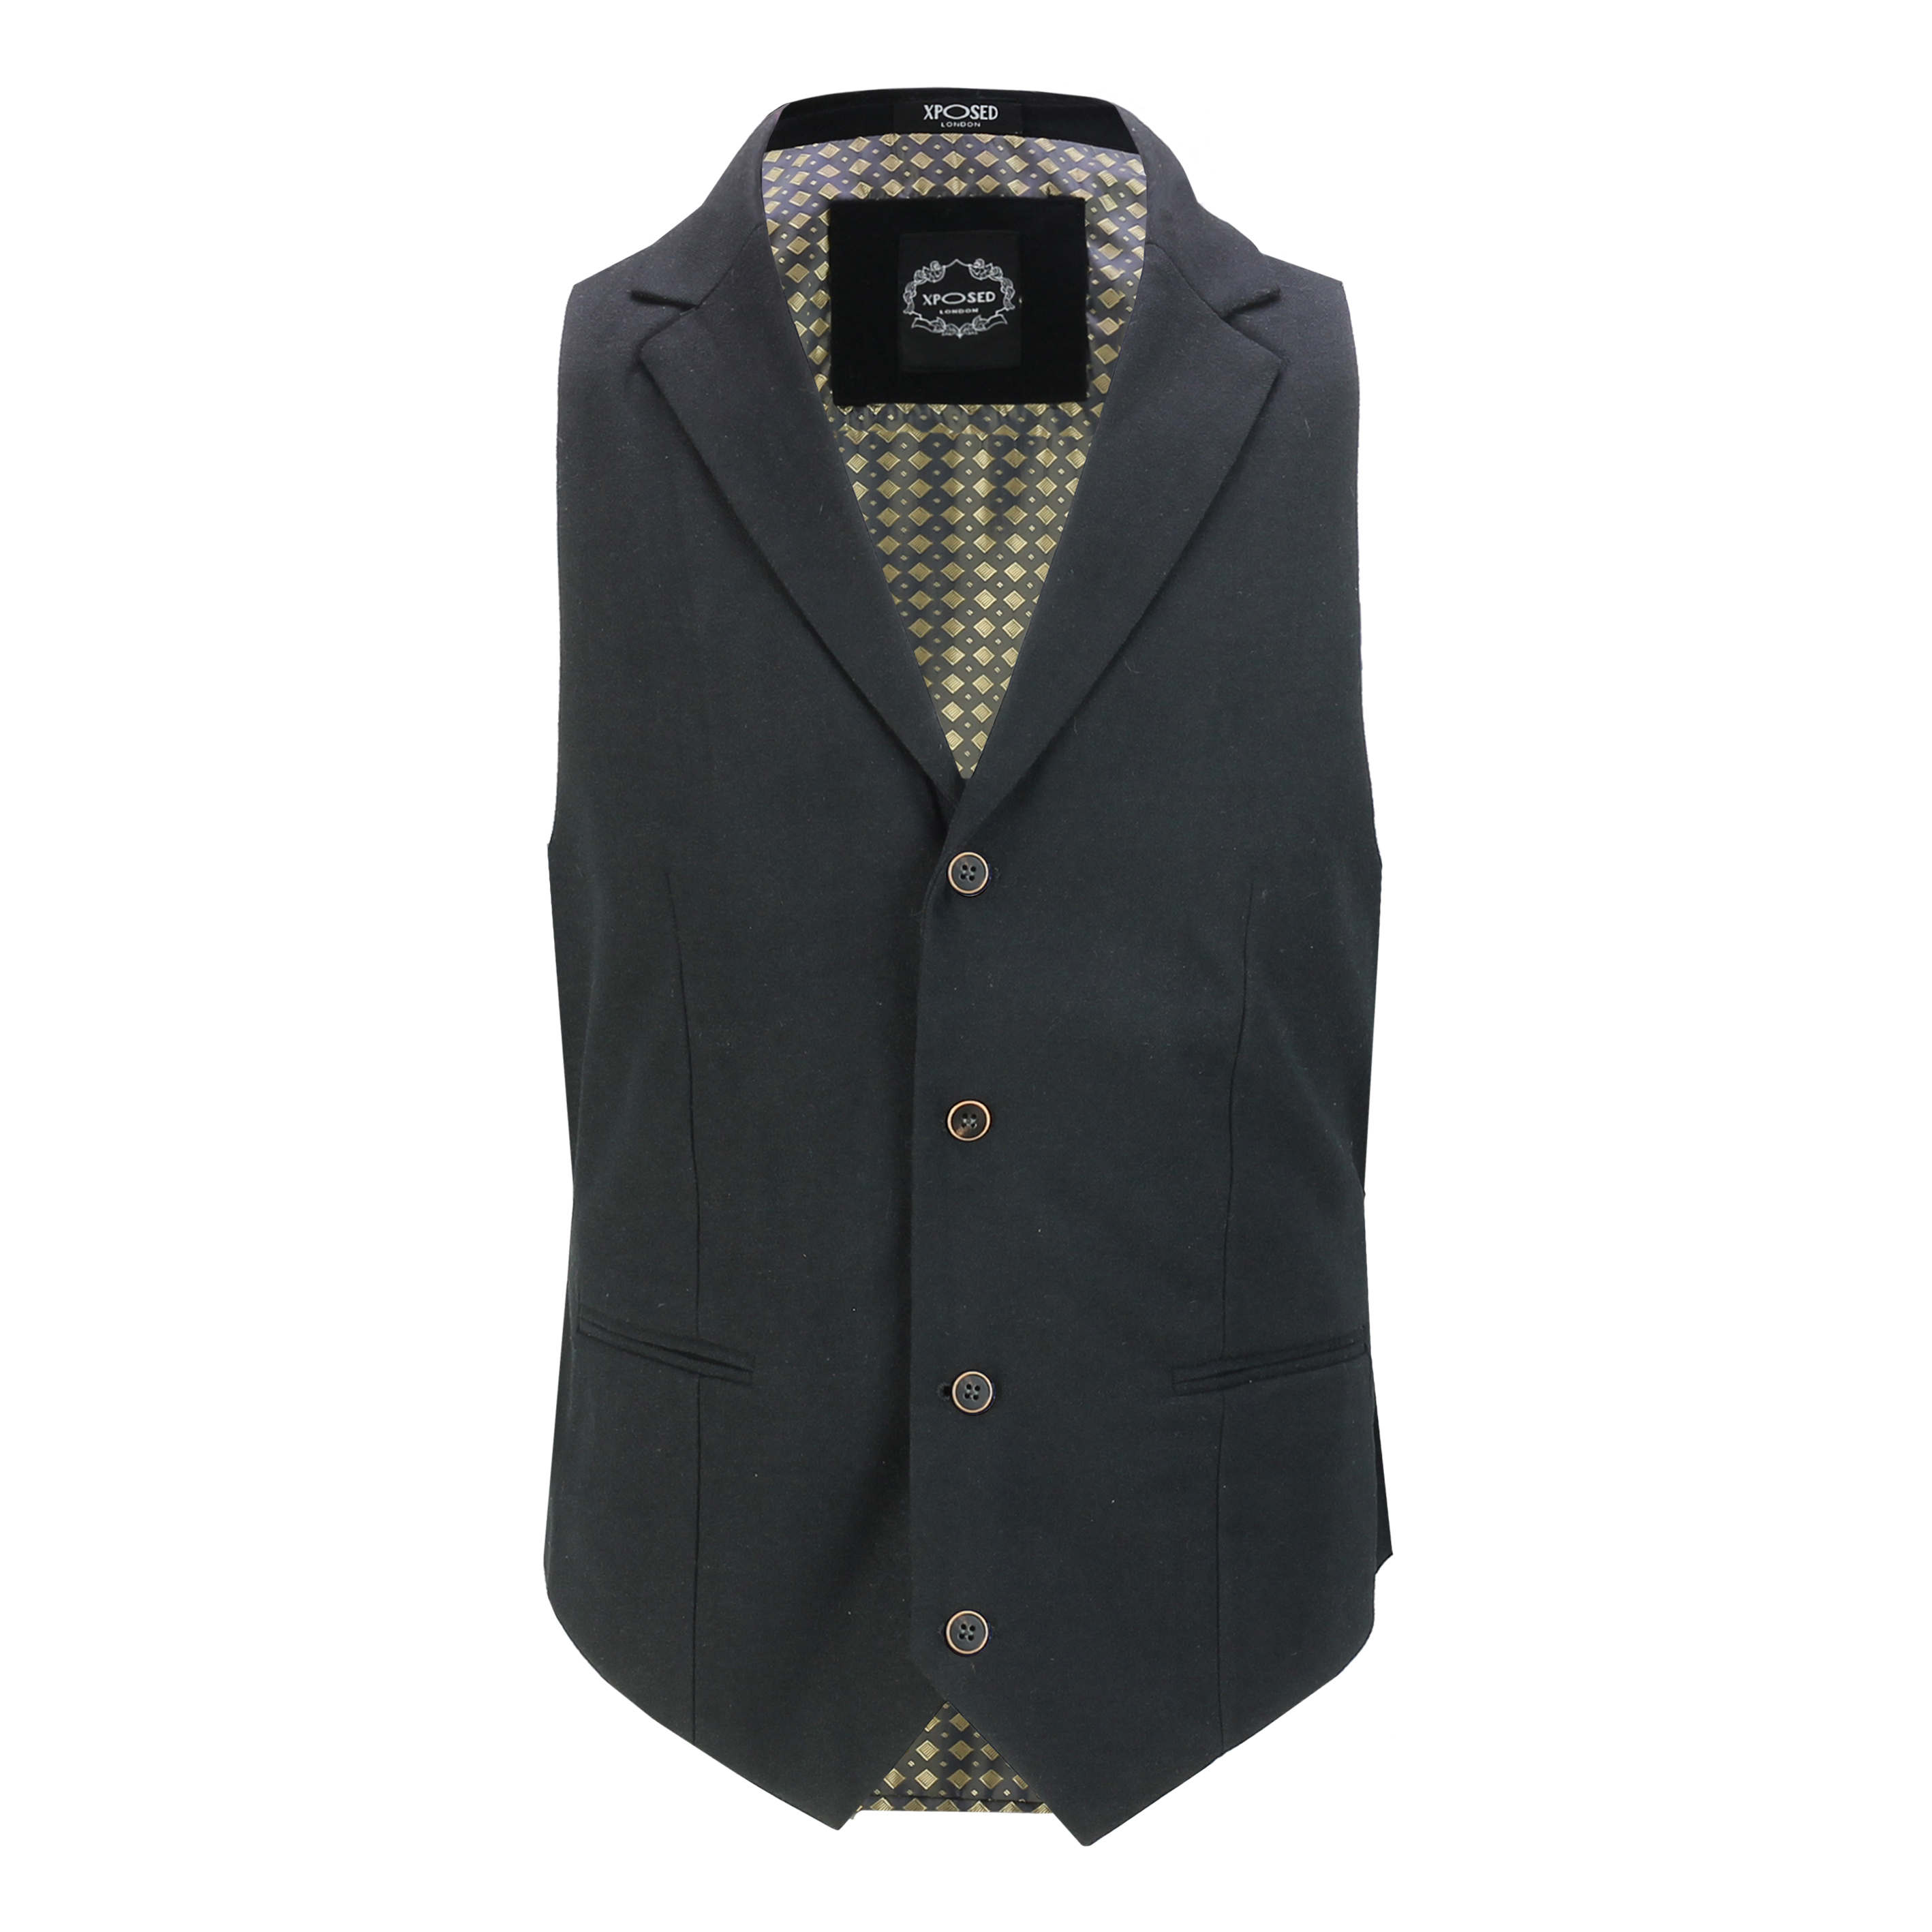 Mens-Classic-Collar-Waistcoat-Retro-Vintage-Style-Tailored-Fit-Smart-Formal-Vest thumbnail 3